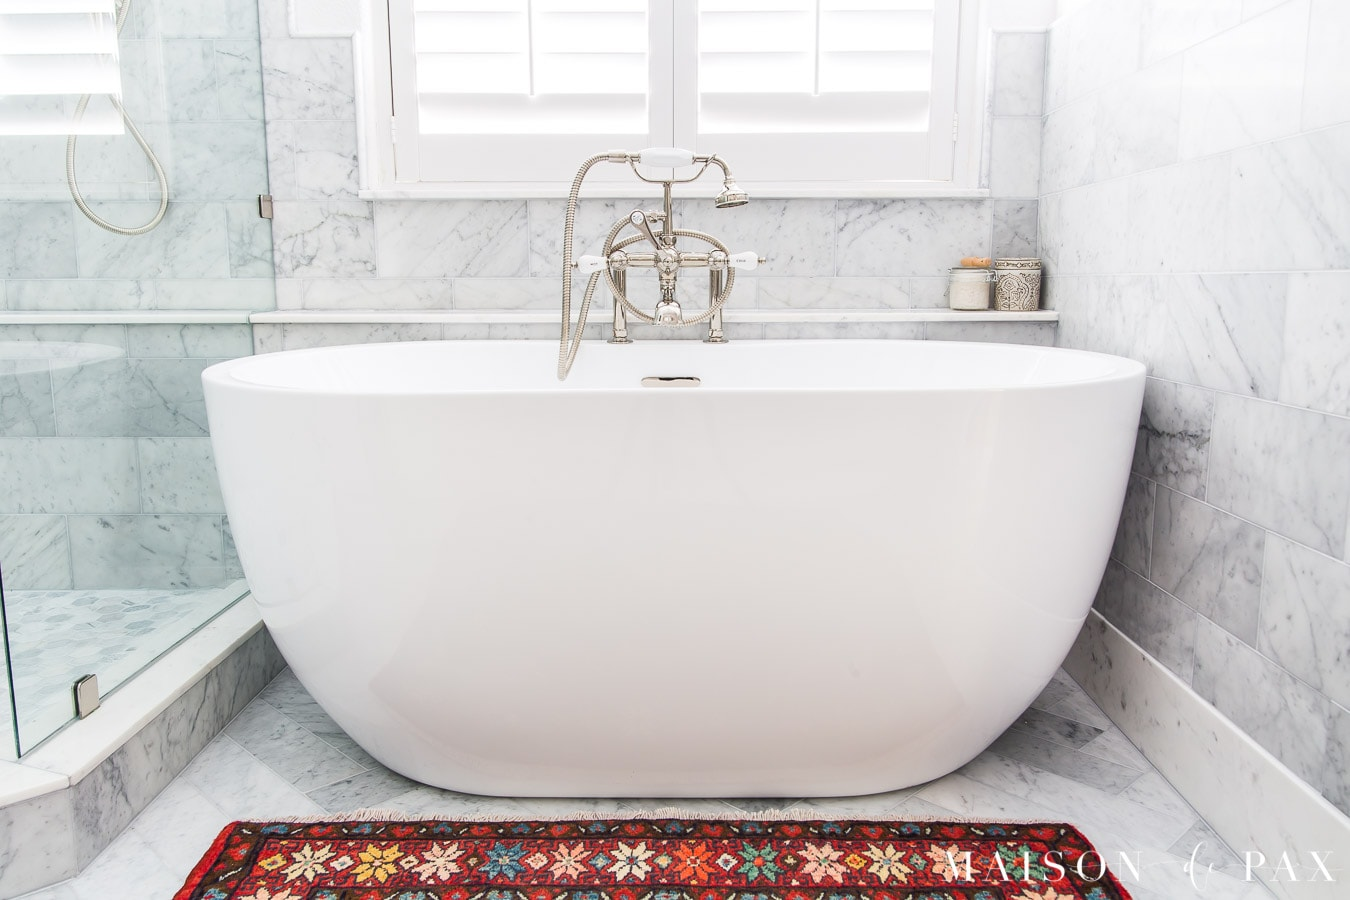 white freestanding tub under window | Maison de Pax